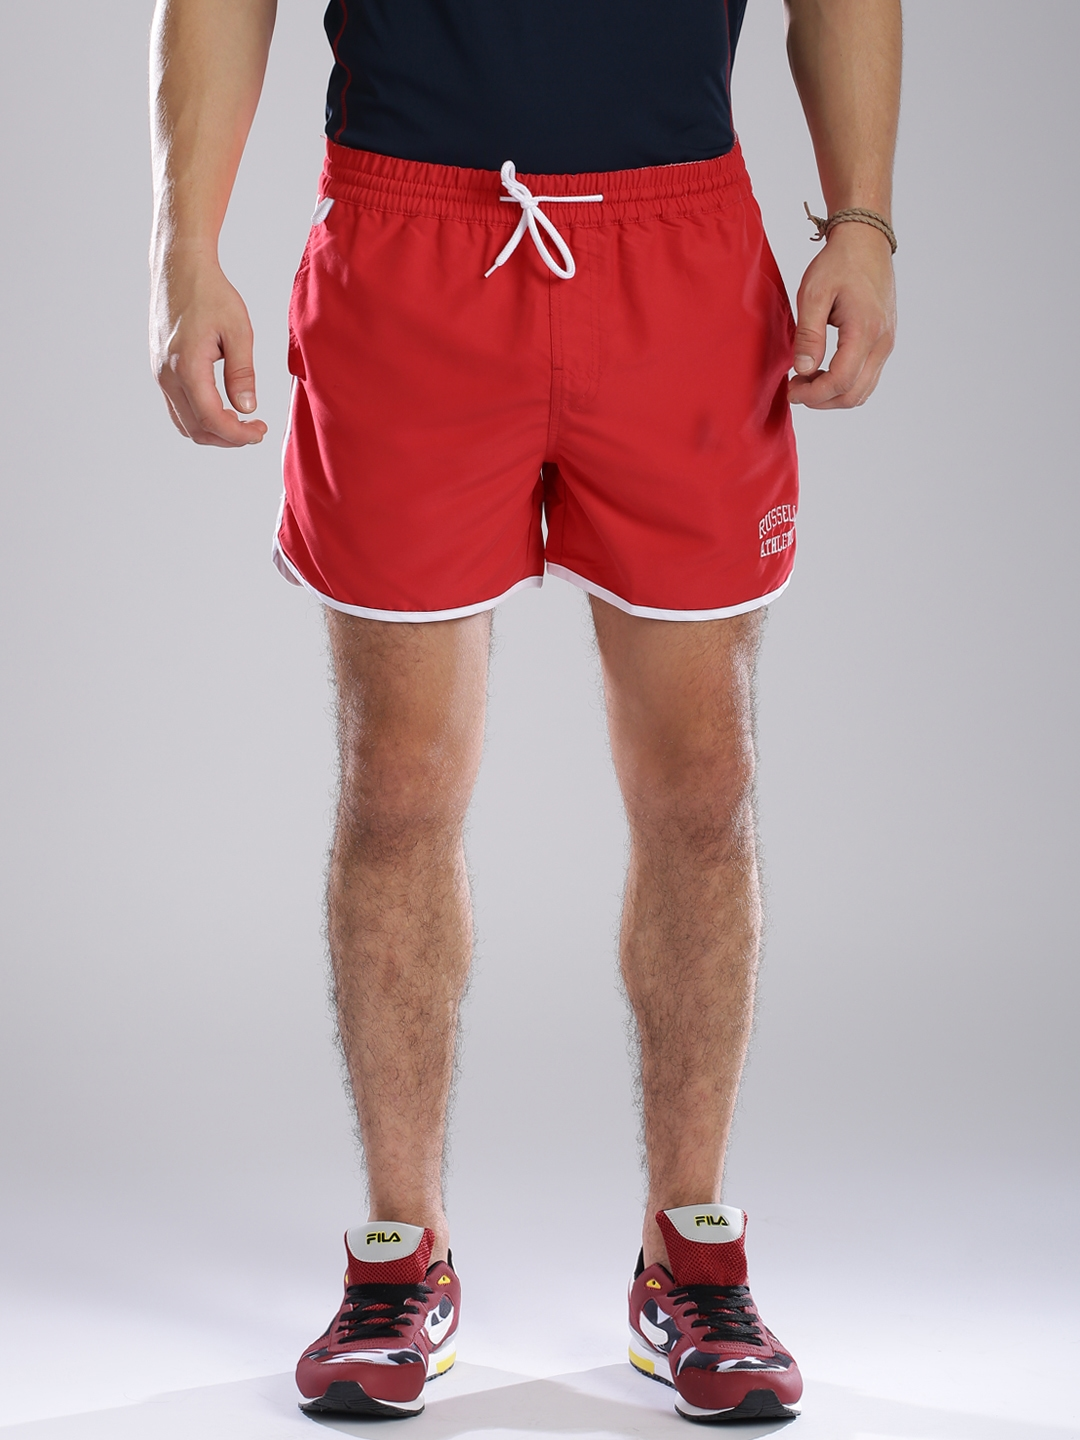 74d31f8bd773 Buy Russell Athletic Red Shorts - Shorts for Men 1271896